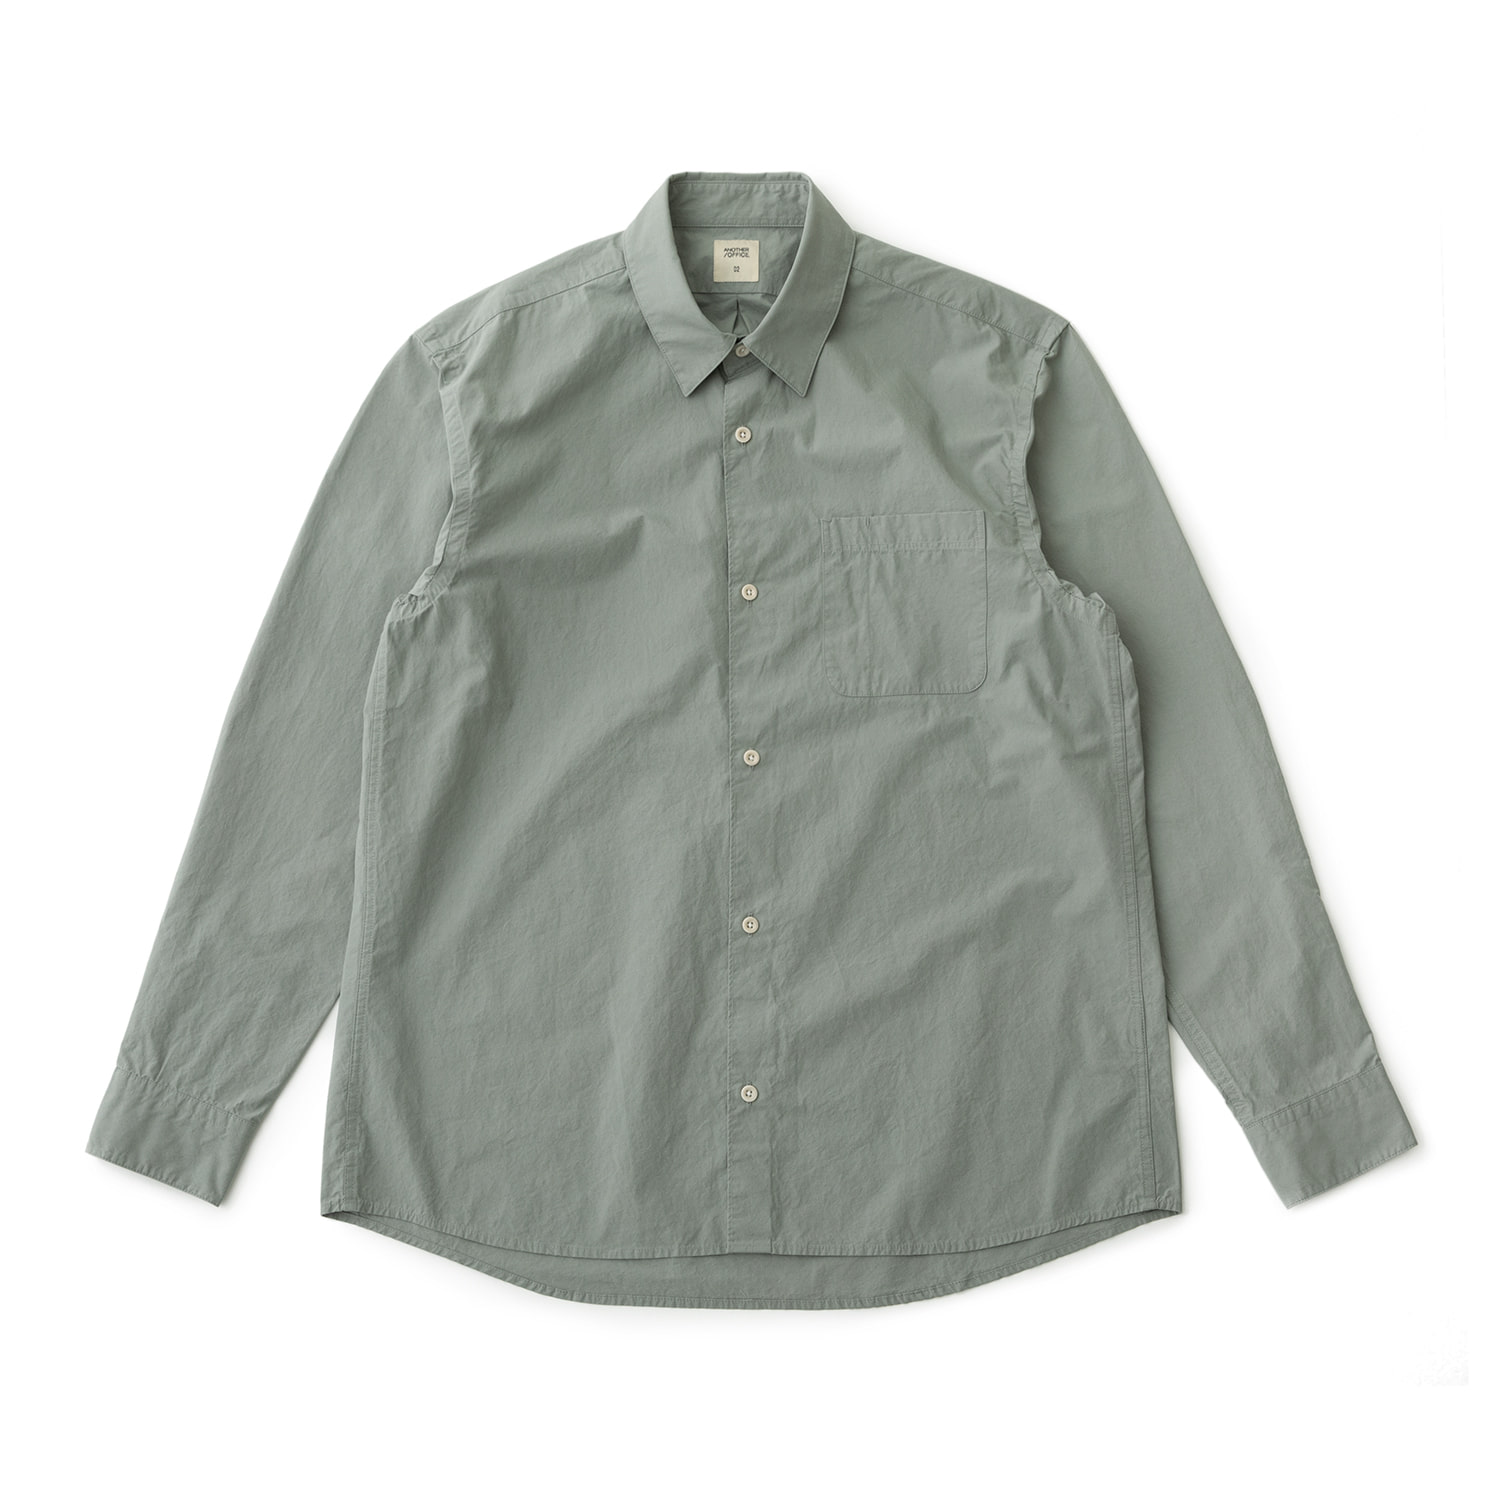 [재입고] Downtown Shirt (Sage Gray)